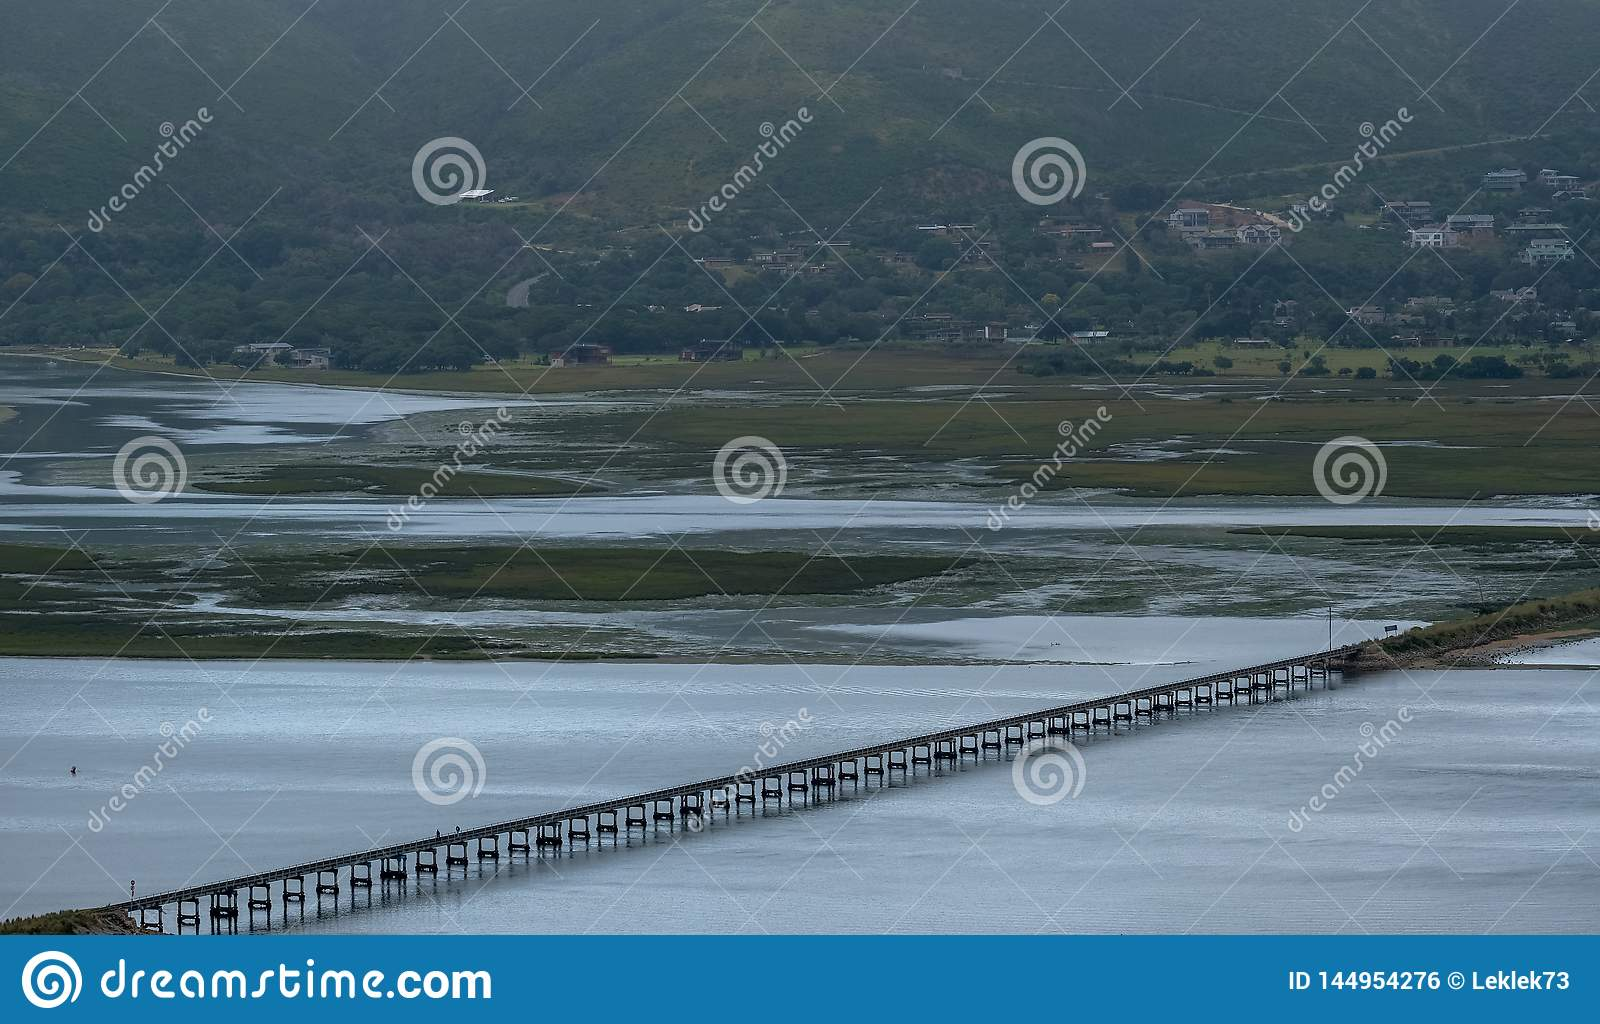 Knysna, South Africa: water in the estuary at Knysna Lagoon, with bridge carrying train lines running across the water.